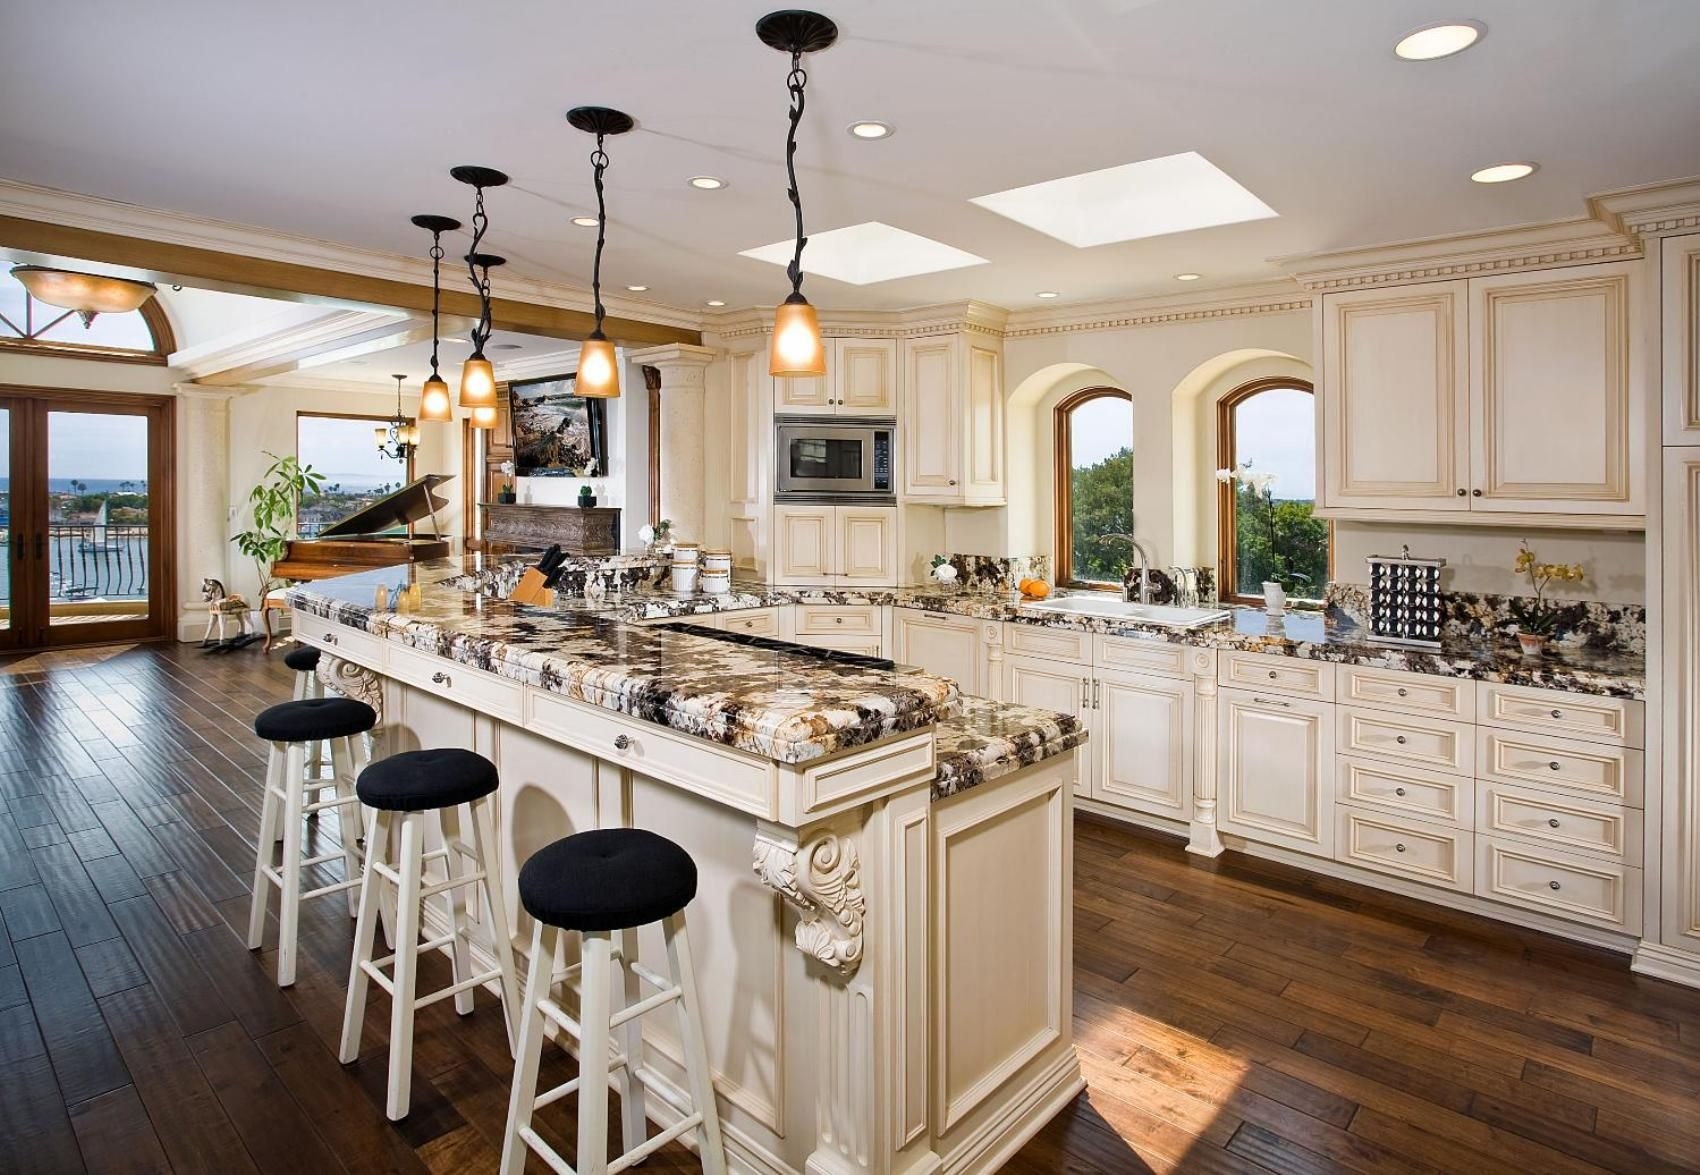 29 Impressive Kitchen Design Gallery  Infobury  Kitchen Pleasing Kitchen Design Gallery Ideas 2018